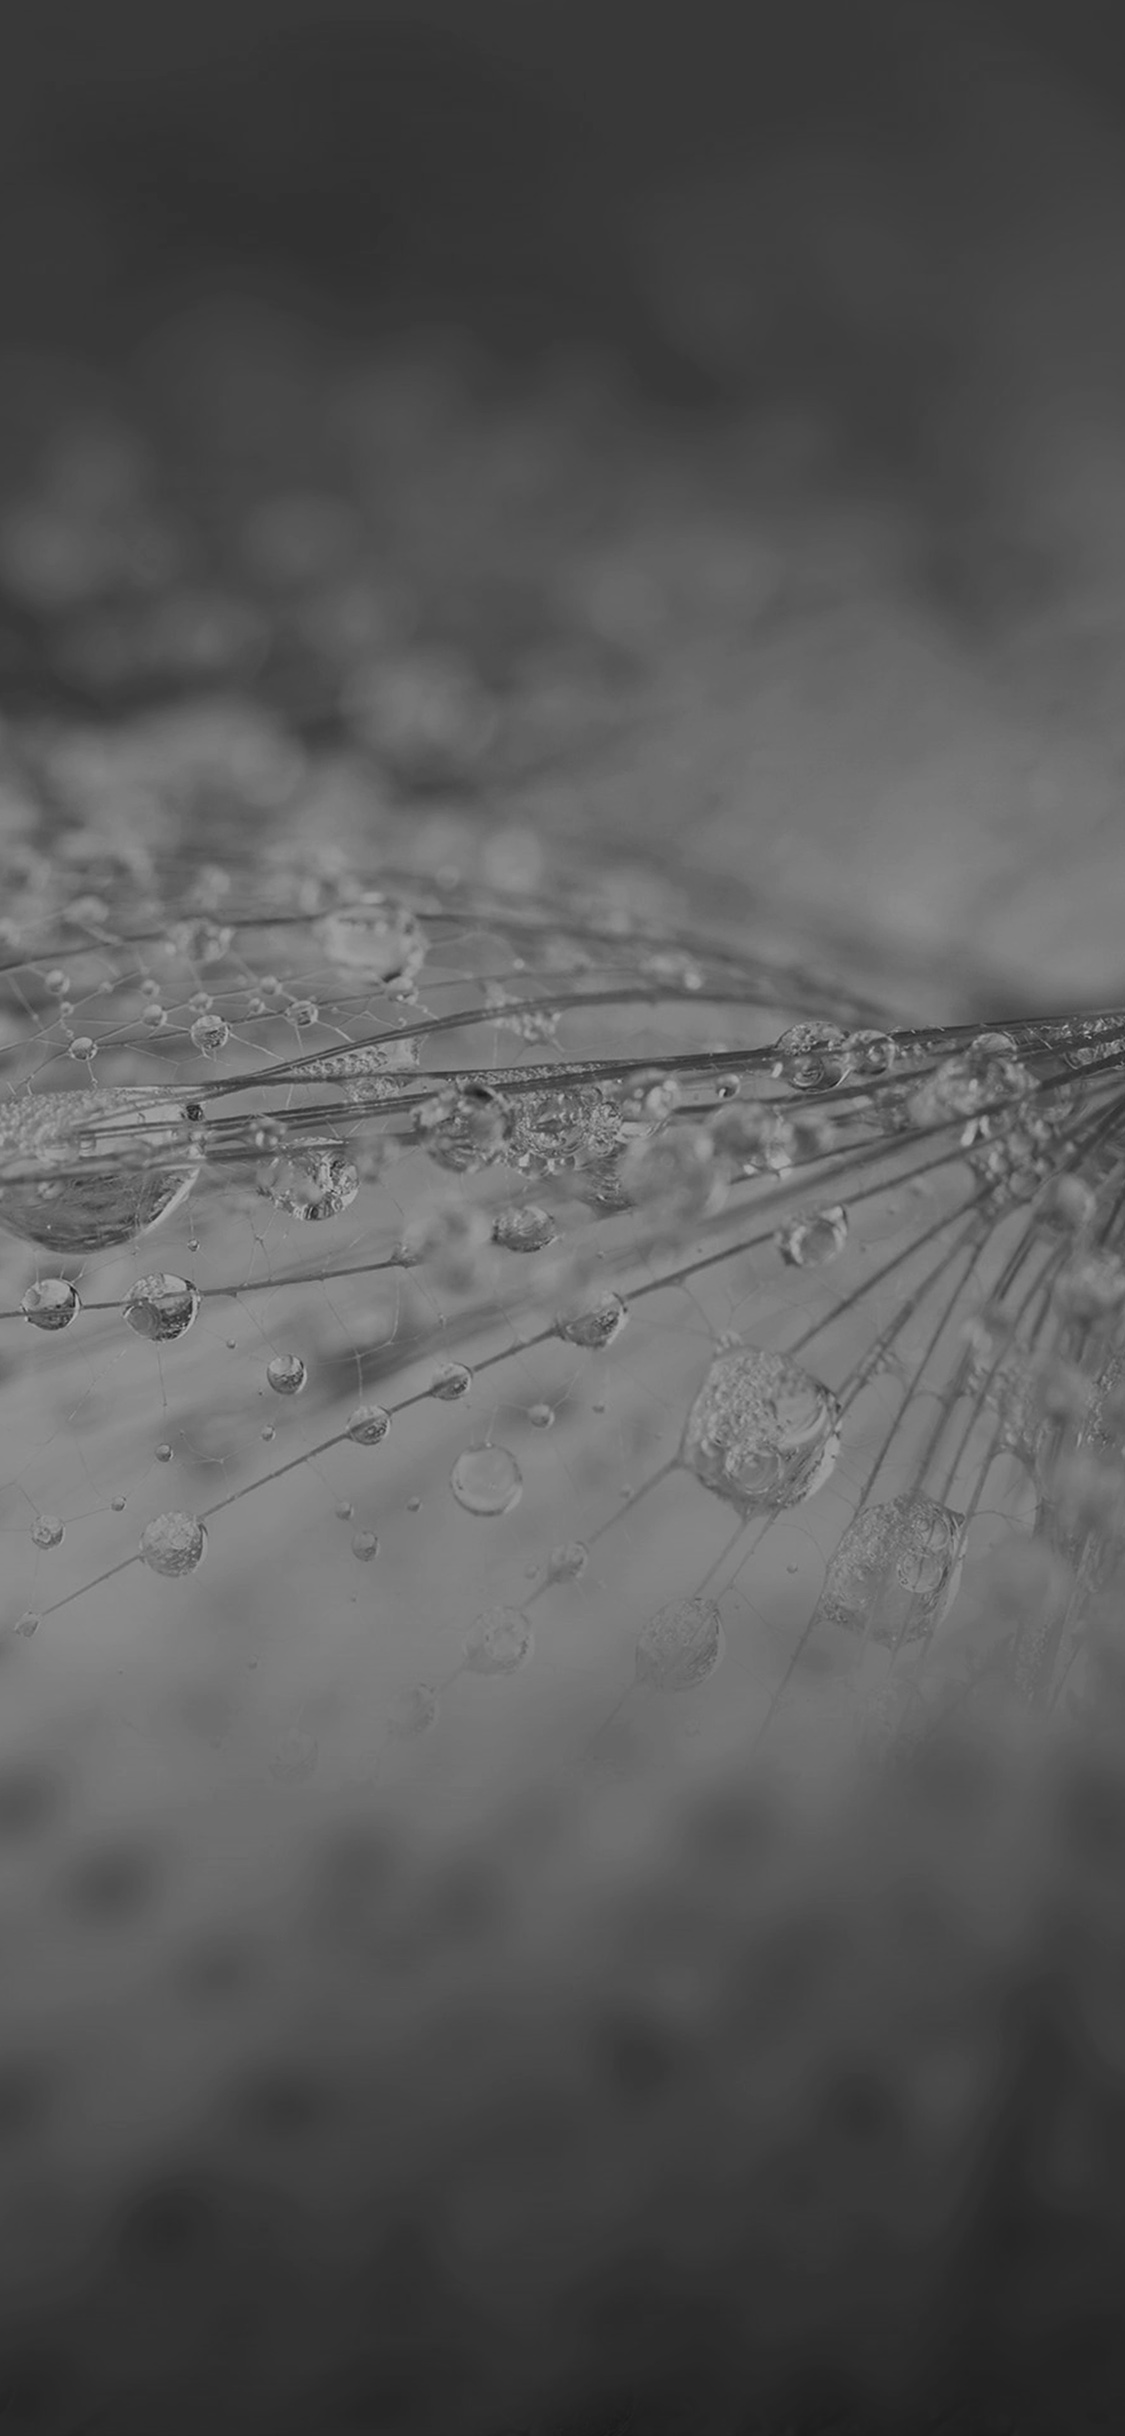 iPhoneXpapers.com-Apple-iPhone-wallpaper-vj74-nature-rain-drop-flower-dark-bw-pattern